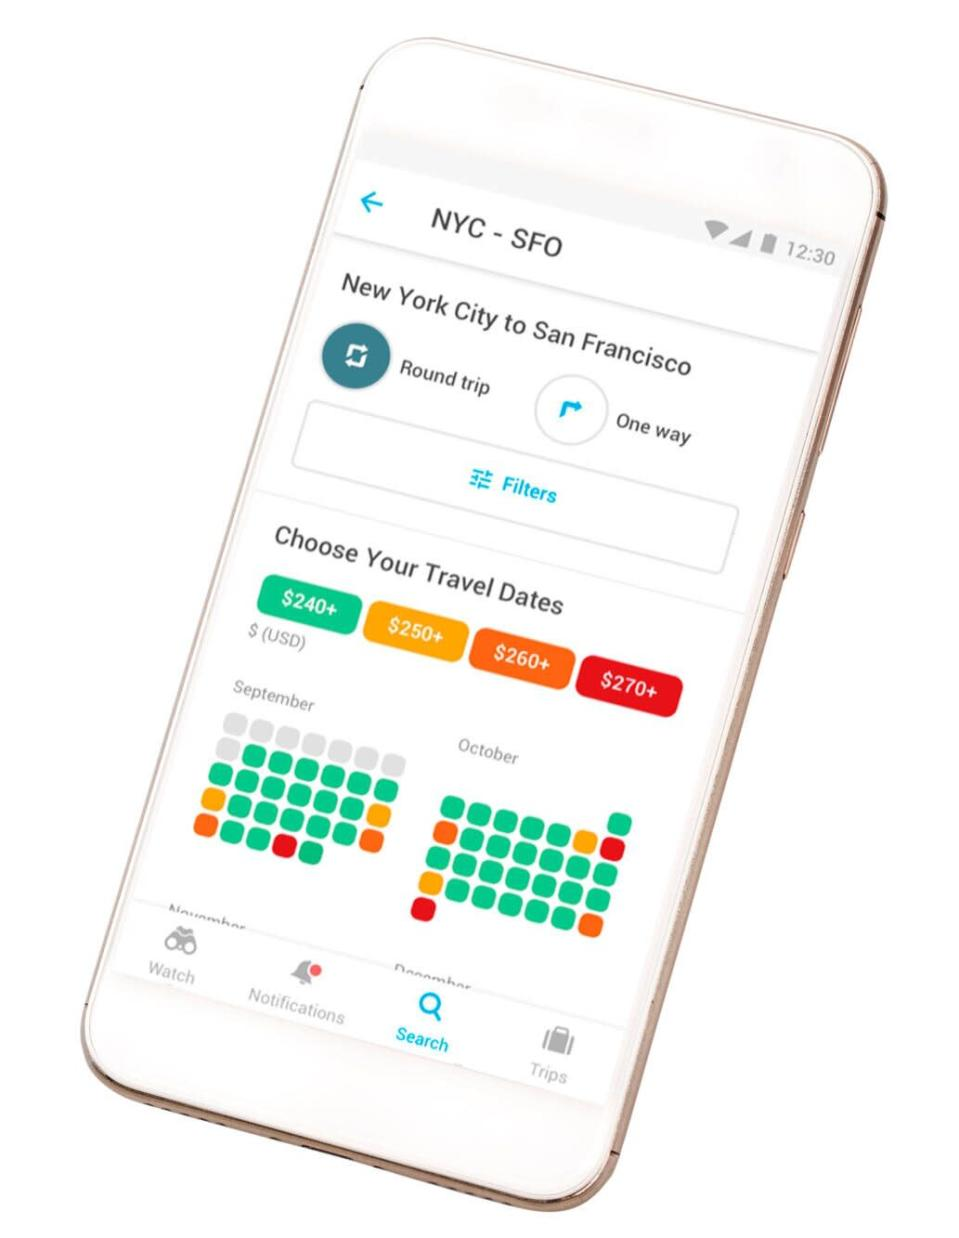 """""""There's no magic day or time — but to find the best rate, set up airfare alerts,"""" says Norcross. Try Google Flights, Hopper, Momondo or AirfareWatchdog: Enter your destination and dates, and receive notifications when fares drop. When you see a good price, don't wait—the better the fare, the faster it will disappear. To give yourself the best chance for a cheap ticket, start monitoring prices about two to three months before your departure date."""